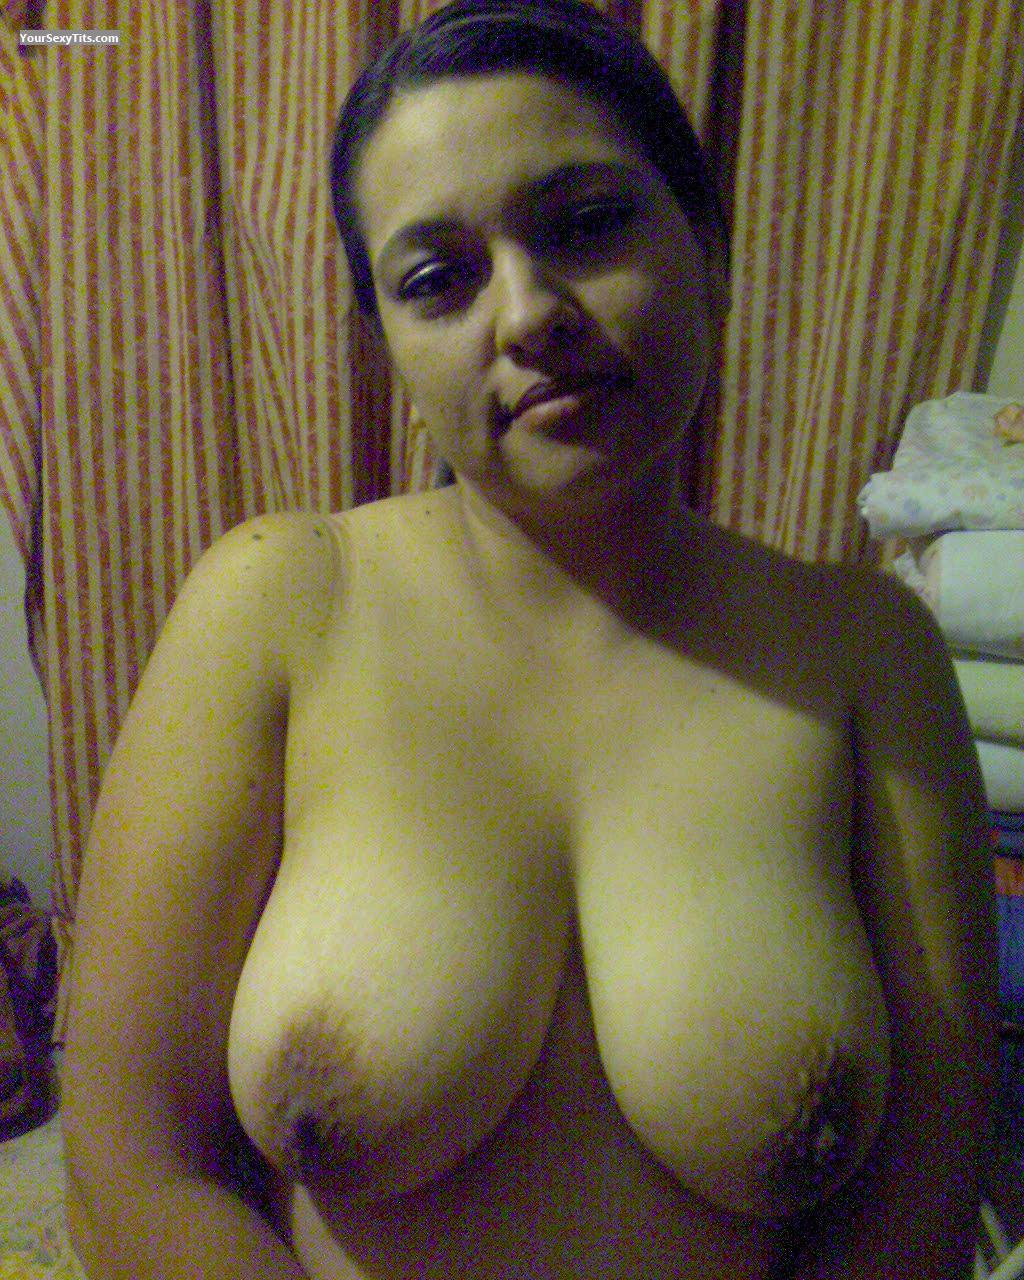 Tit Flash: Big Tits - Betty from Mexico